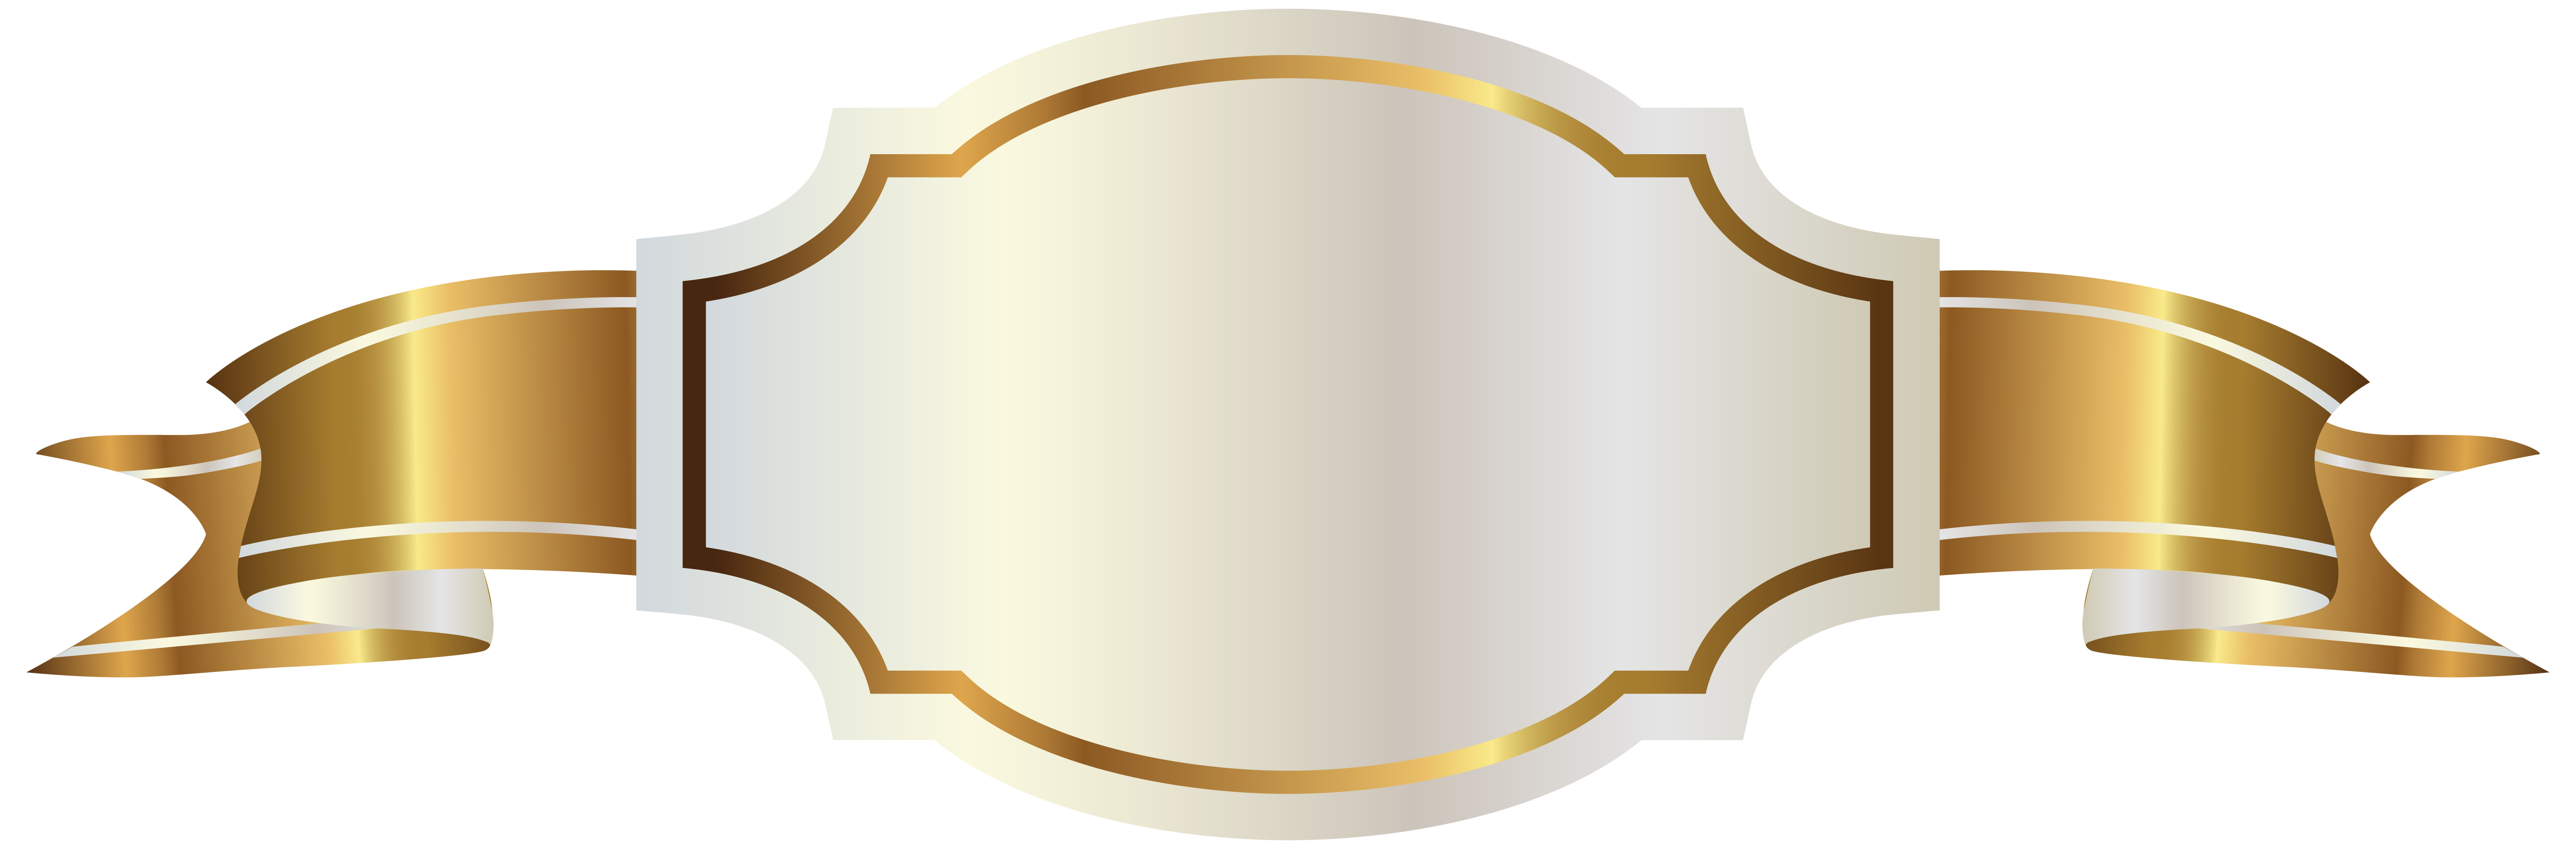 White Label and Gold Banner PNG Clipart Image.